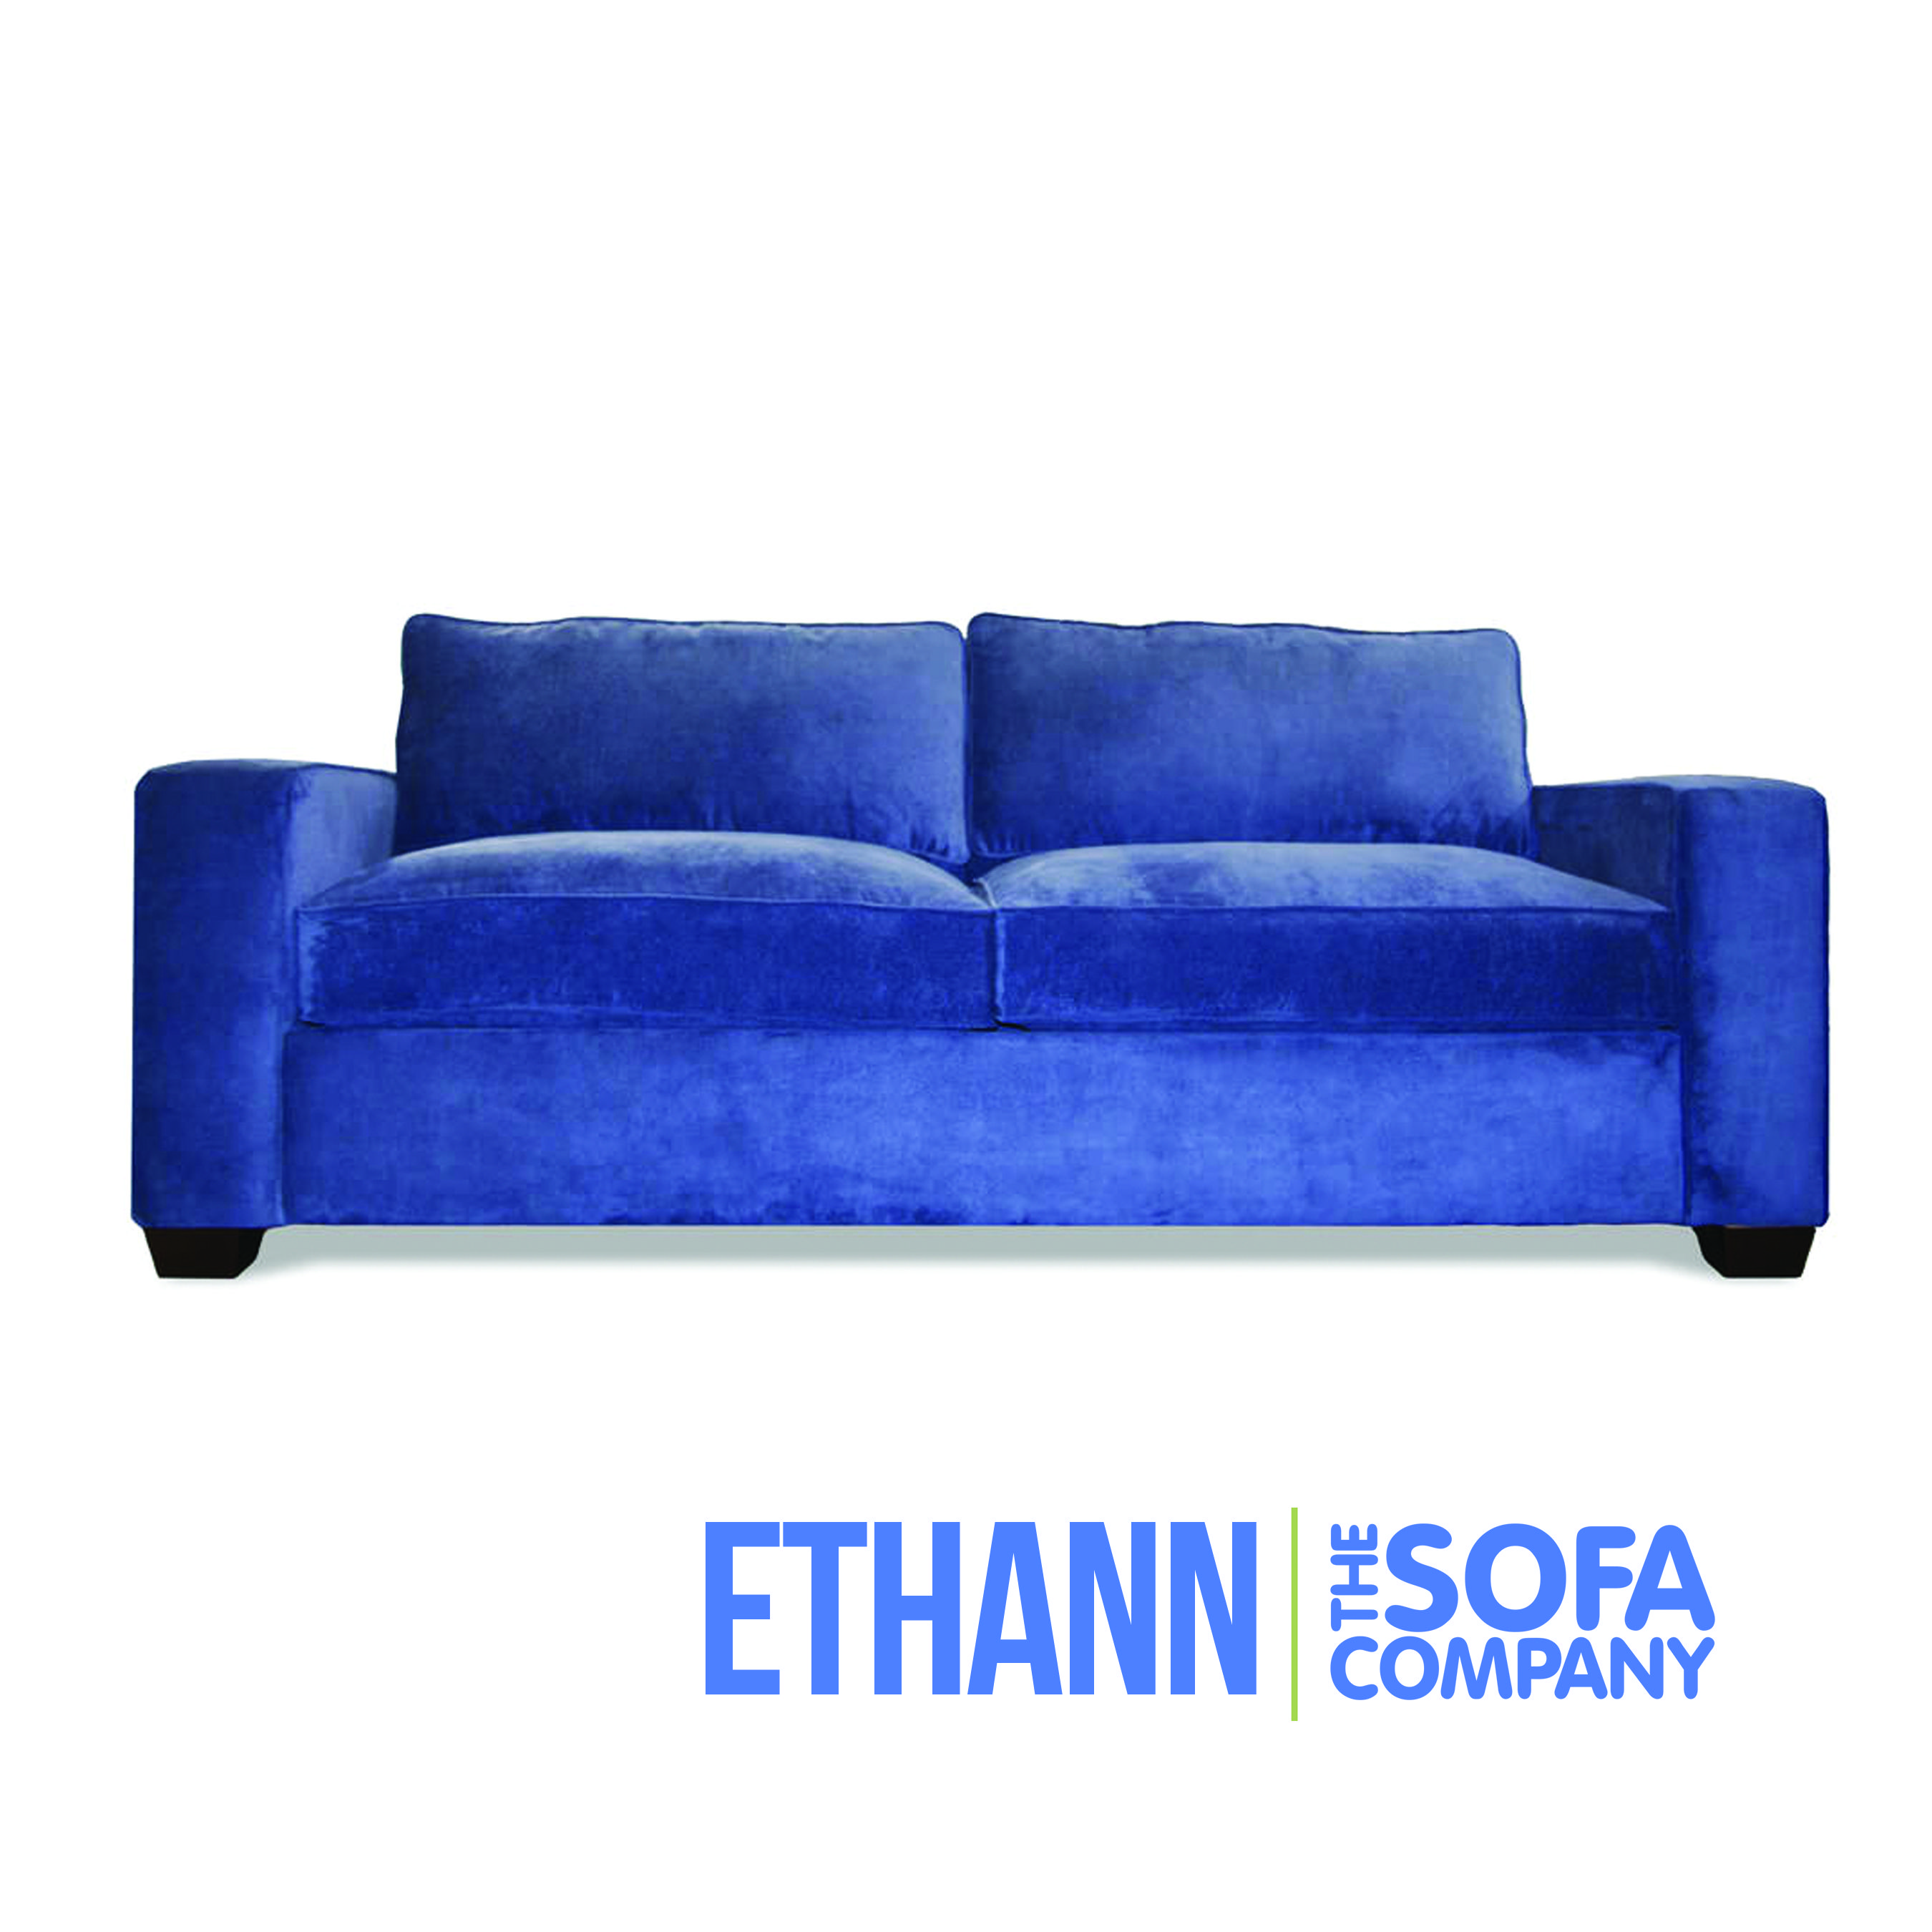 Superieur Ethan Style By The Sofa Company Www.thesofaco.com